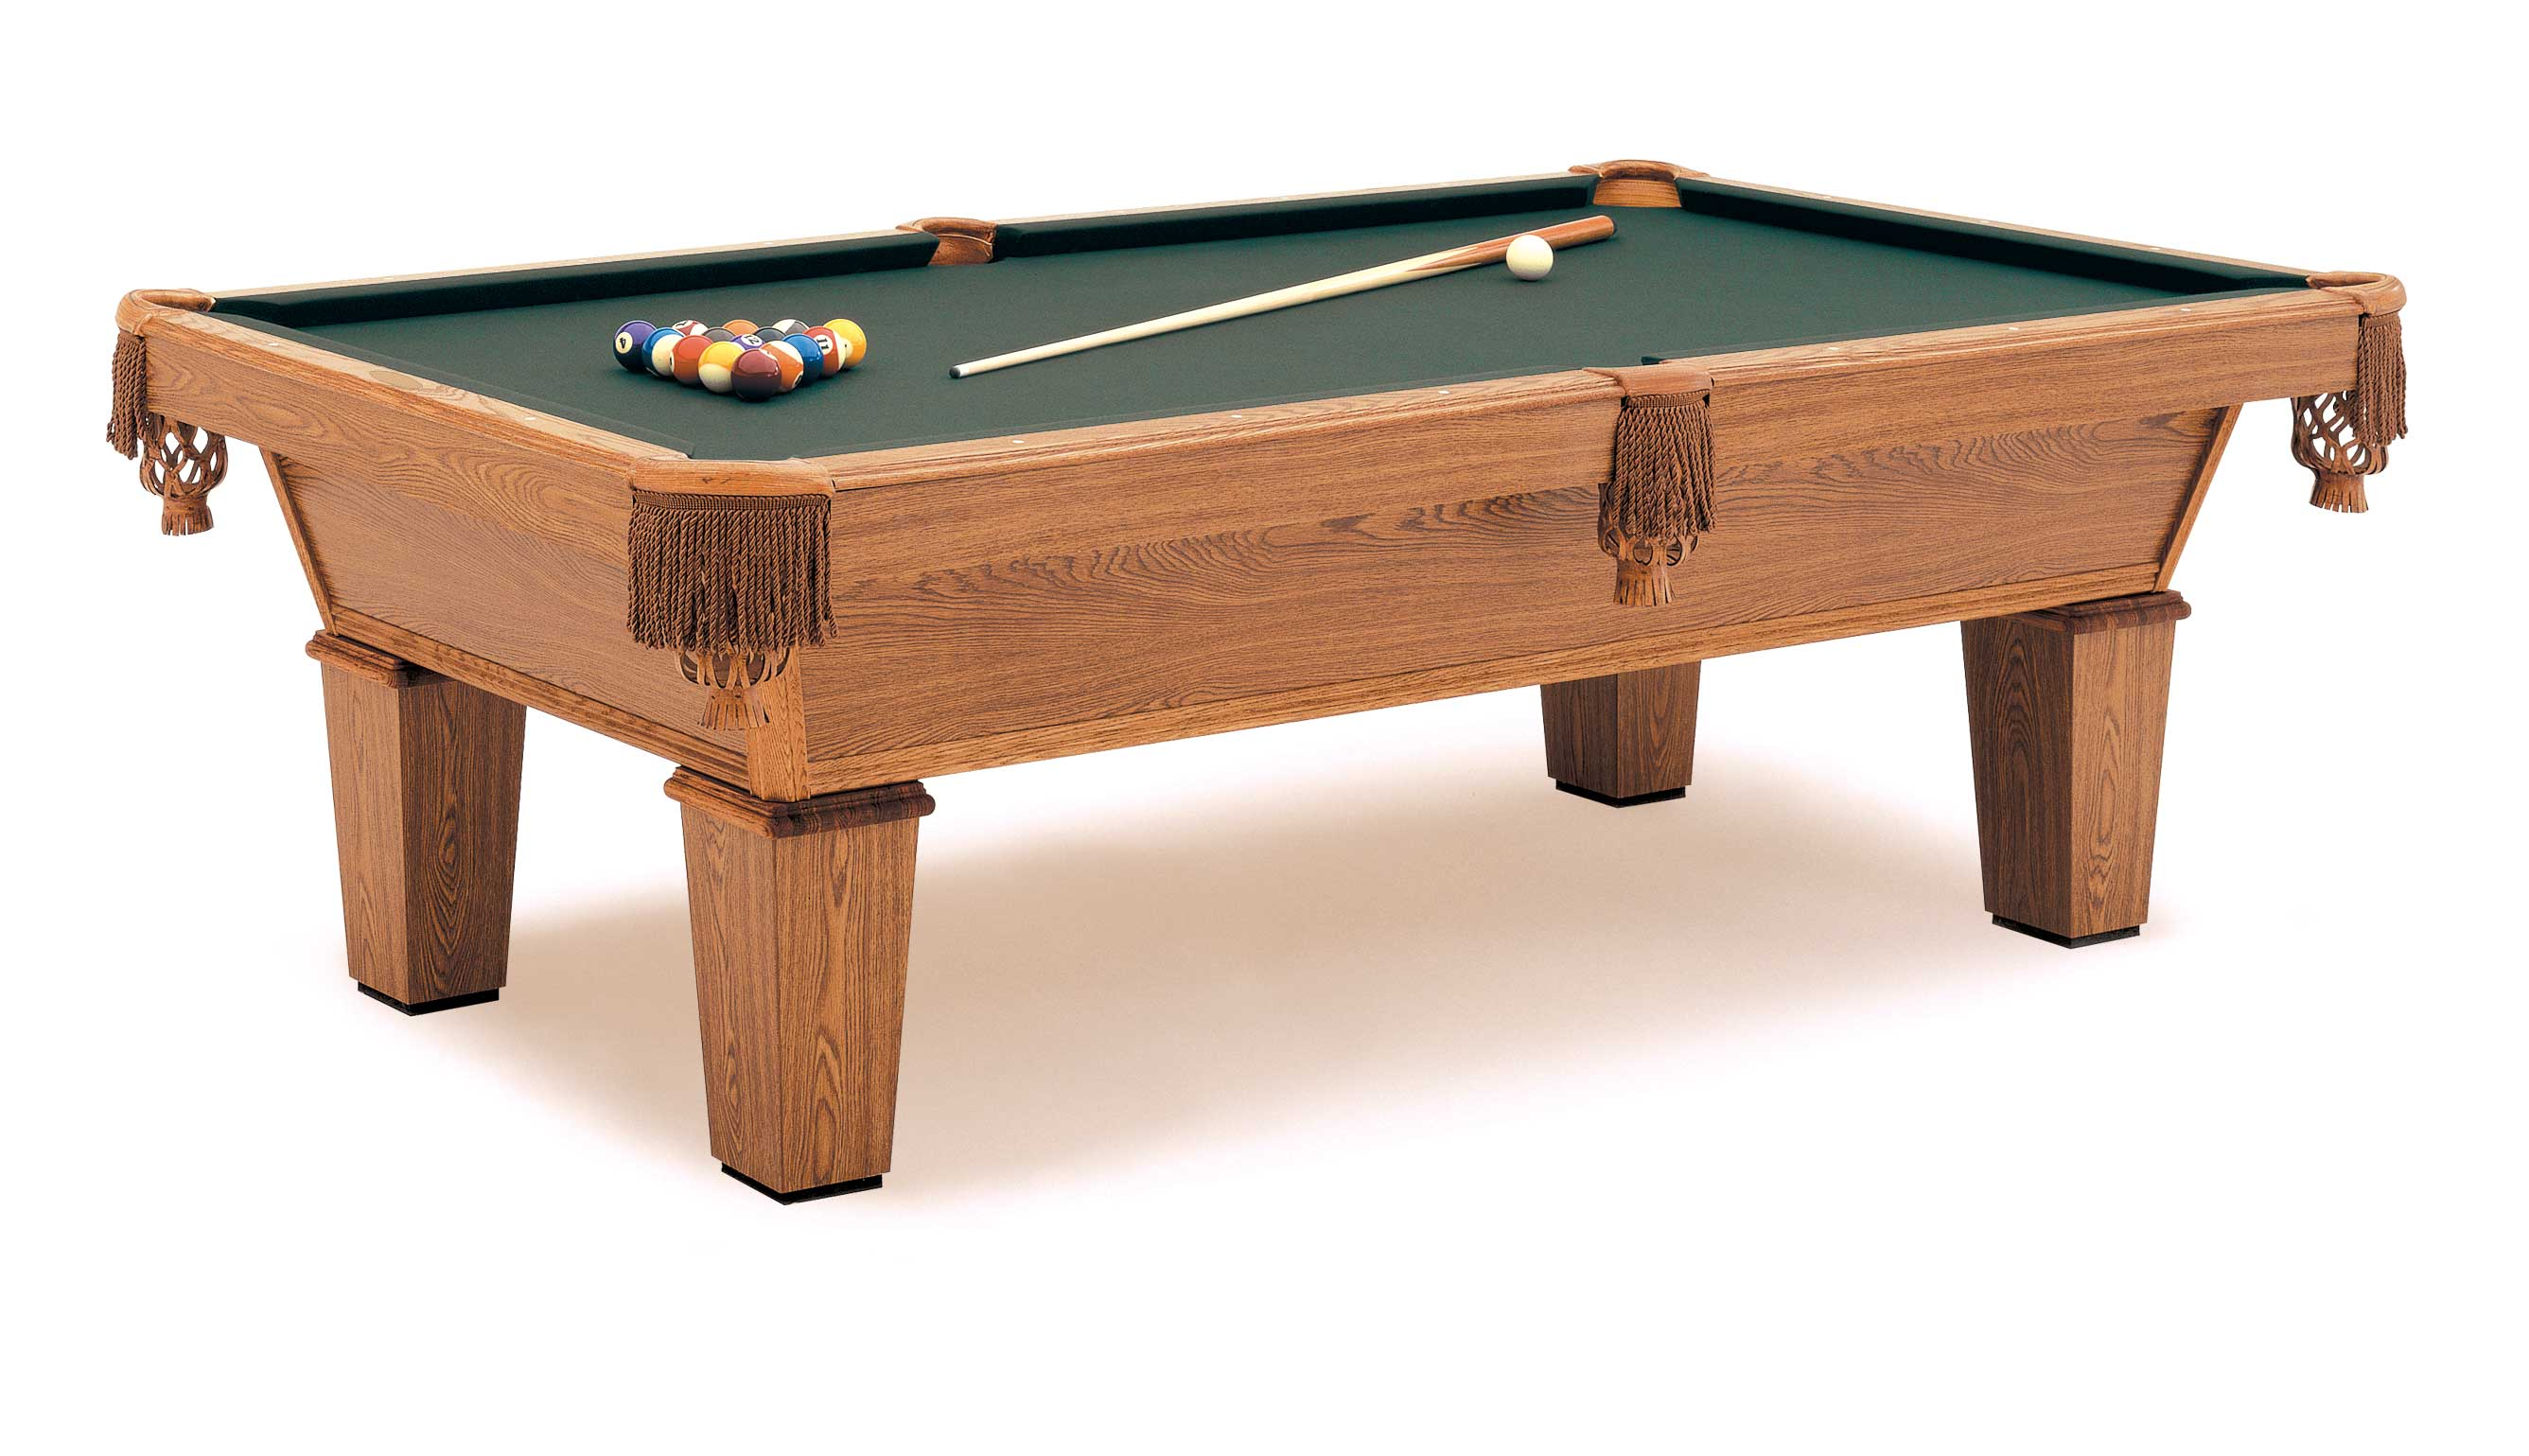 Excellent Olhausen Pool Tables 2673 x 1539 · 257 kB · jpeg